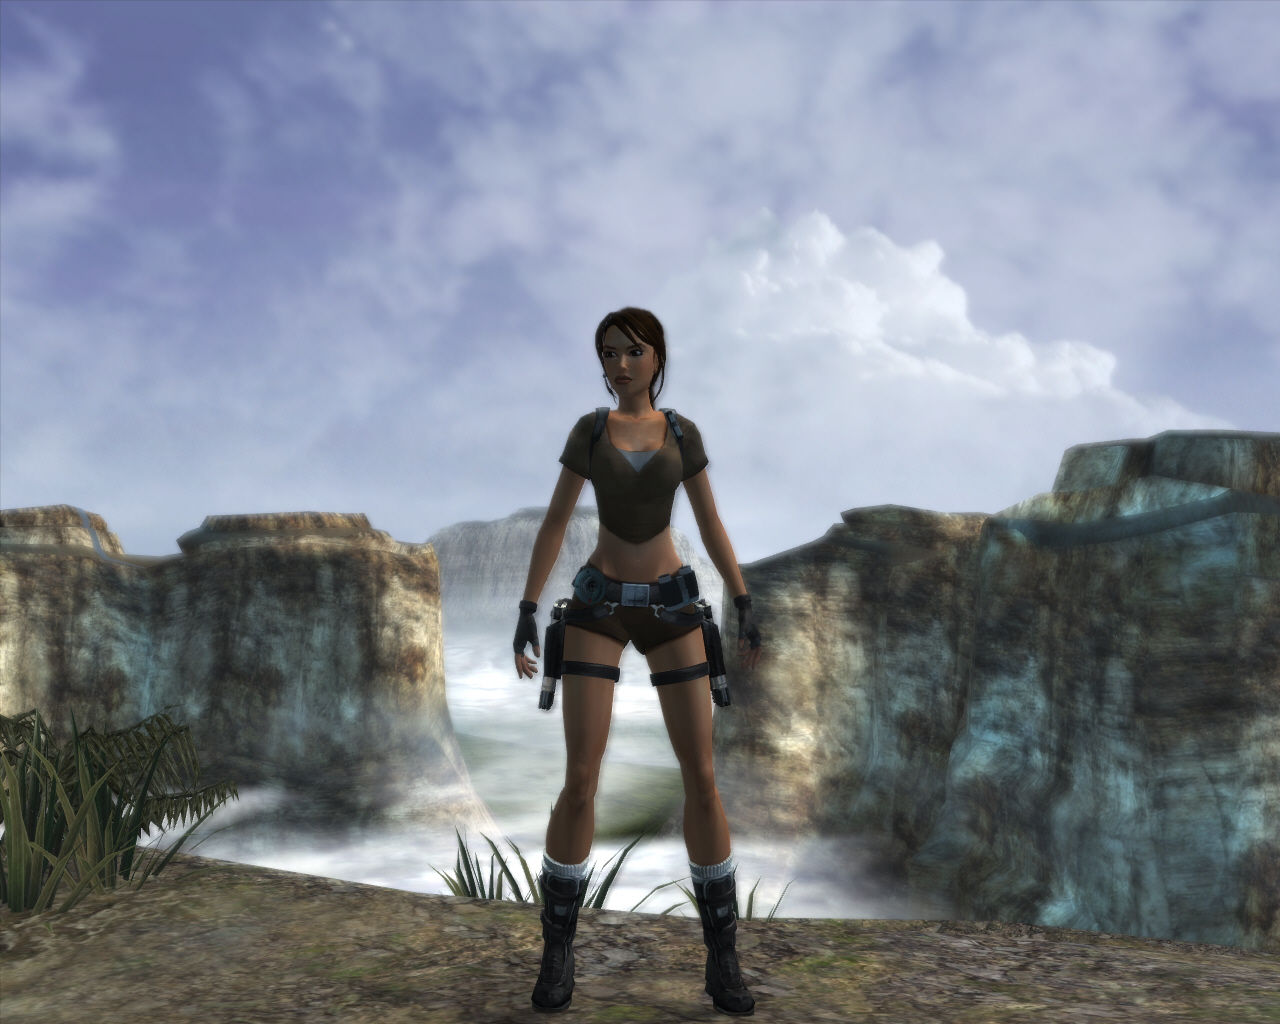 Lara Croft: Tomb Raider - Legend Windows Lara Croft somewhere in Bolivia.